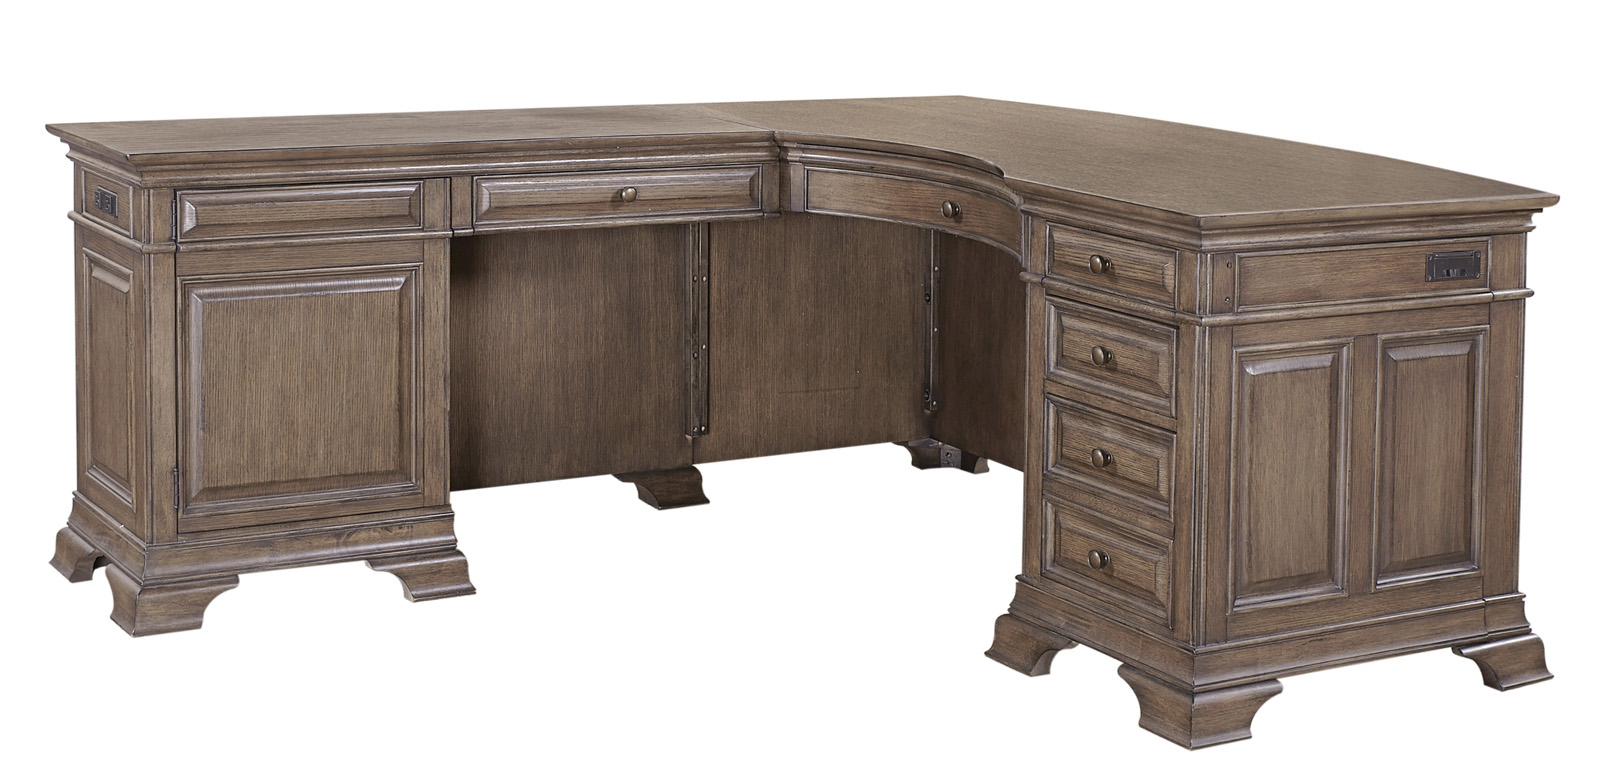 Aspenhome Arcadia 66 Desk And Return In Truffle